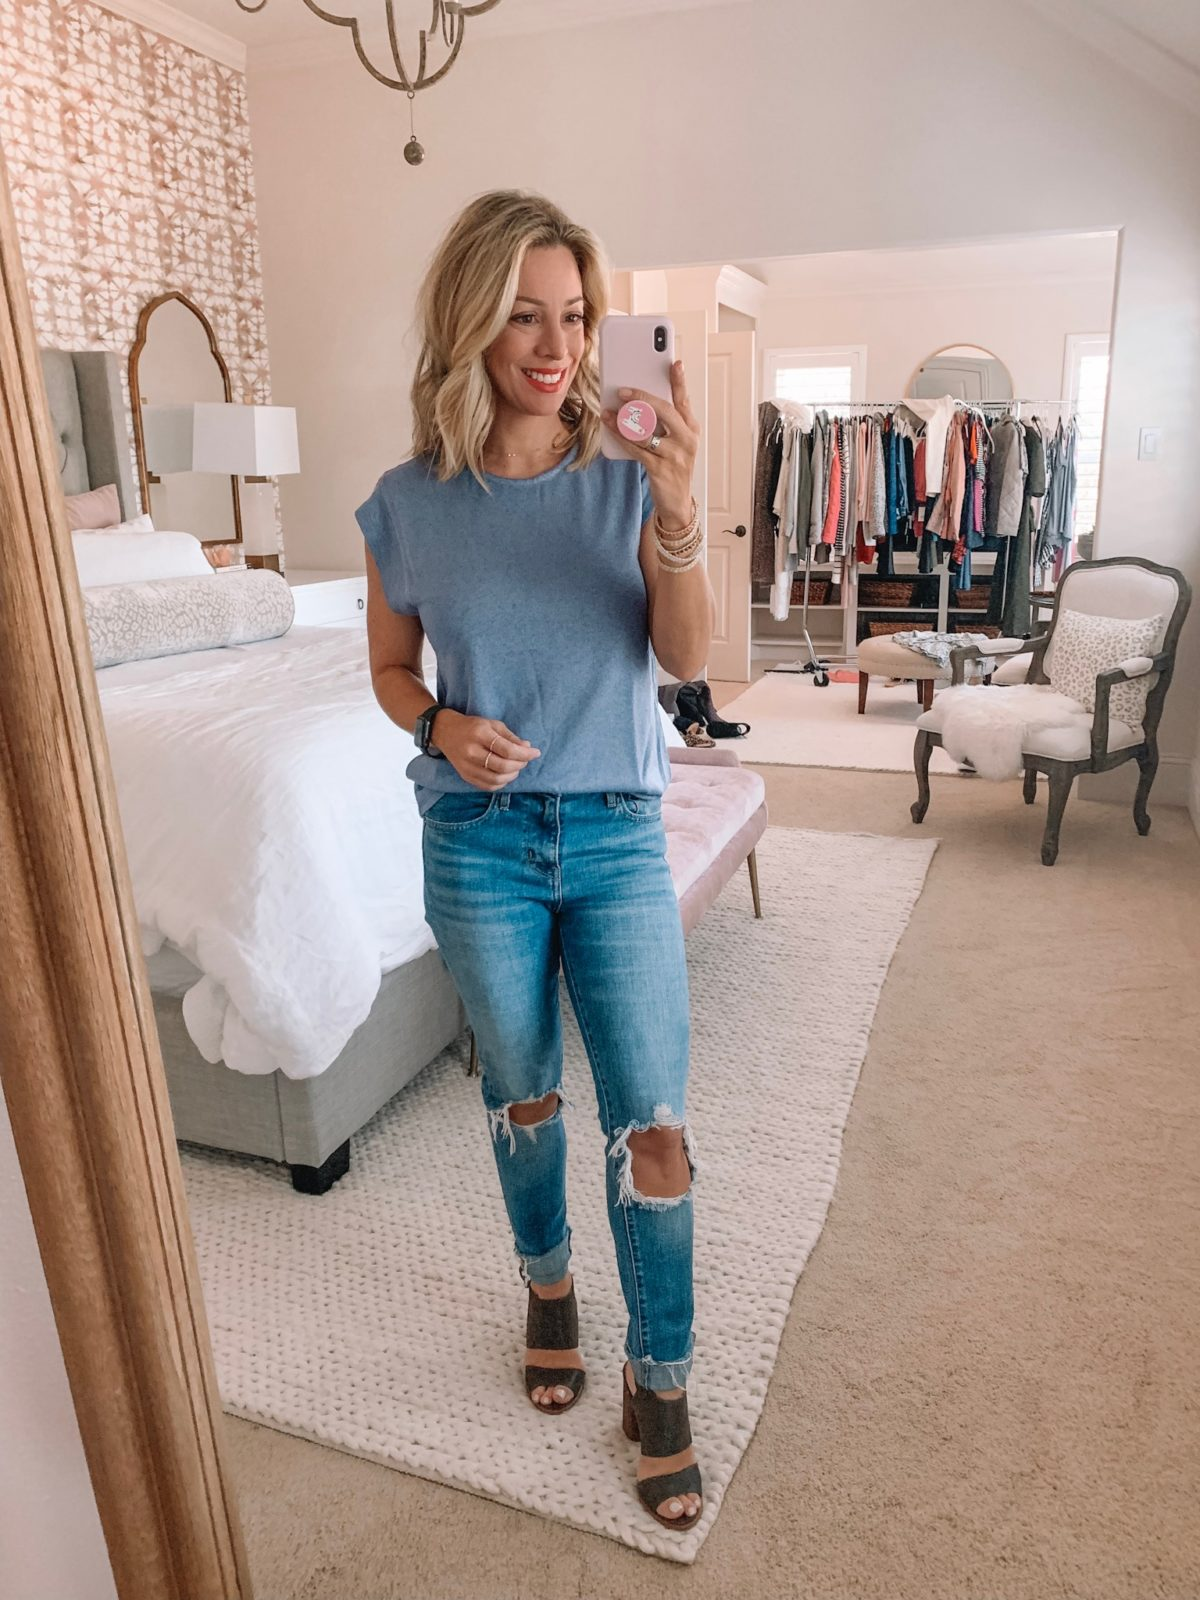 Dressing Room - blue top with blue jeans